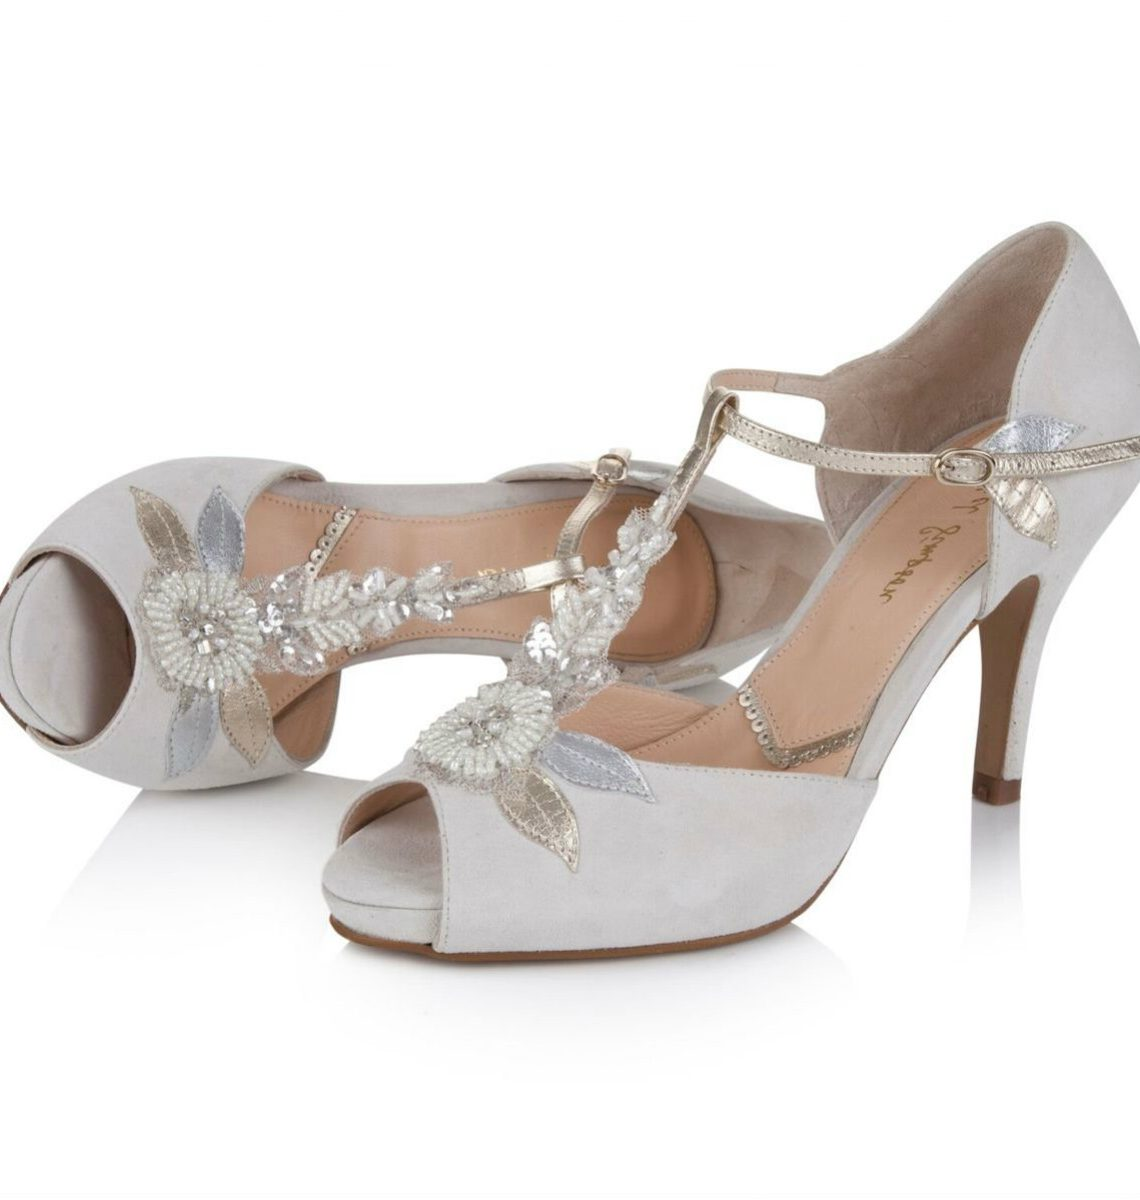 Hermione By Rachel Simpson Ivory Suede Embellished T Bar Vintage Designer Wedding Or Occasion Shoes